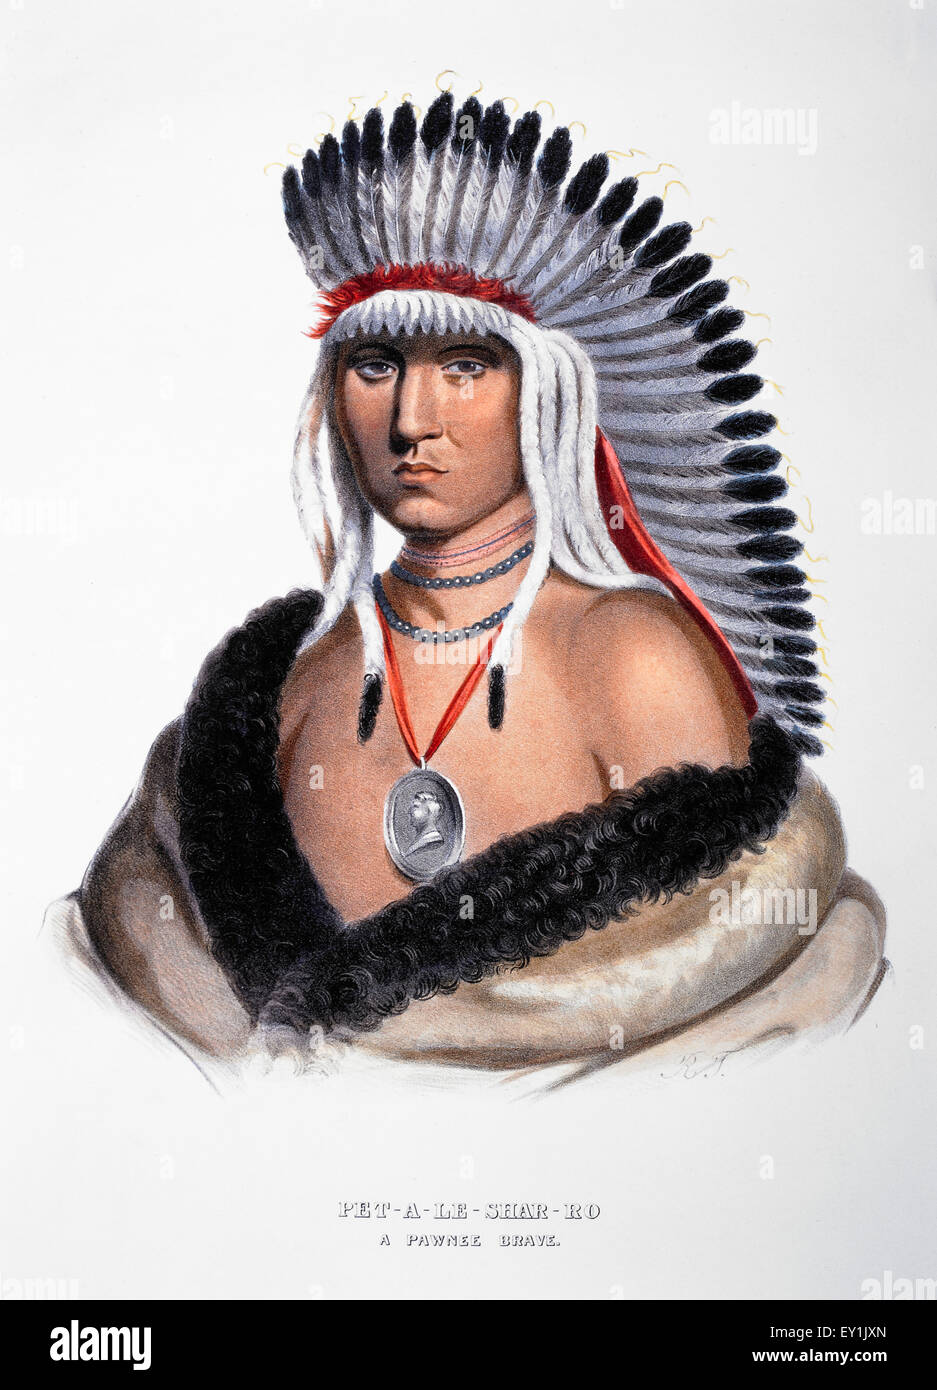 Pet-A-Le-Shar-Ro, Pawnee Chief, Portrait, McKenney & Hall Lithograph from an 1821 Painting by Charles Bird King - Stock Image